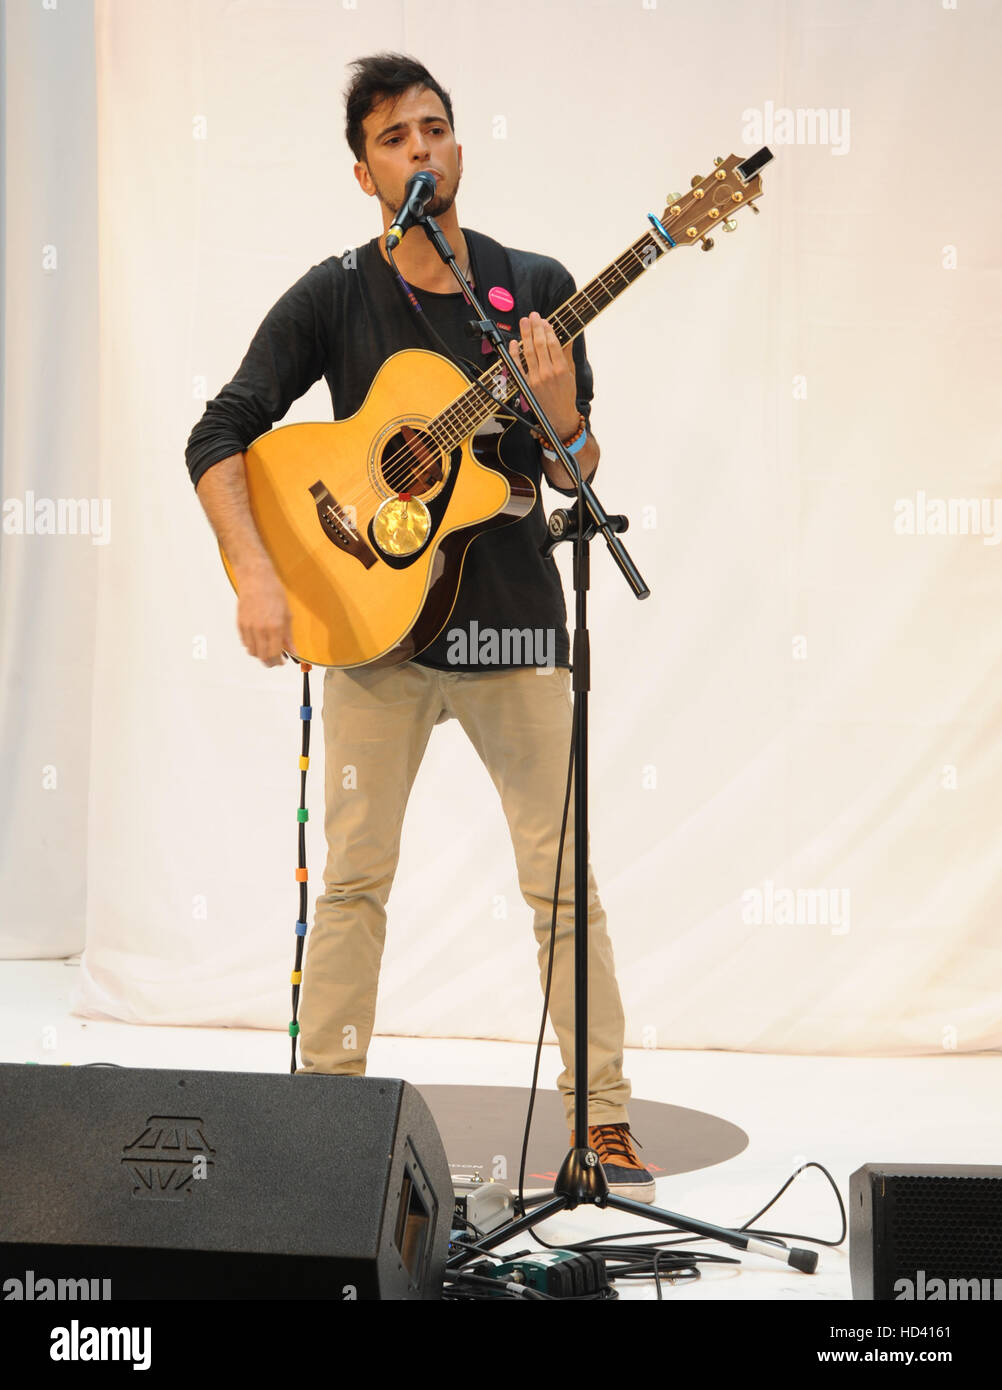 Westfield Stratford Gigs grand final  Featuring: Lucca Where: London, United Kingdom When: 04 Sep 2016 Stock Photo